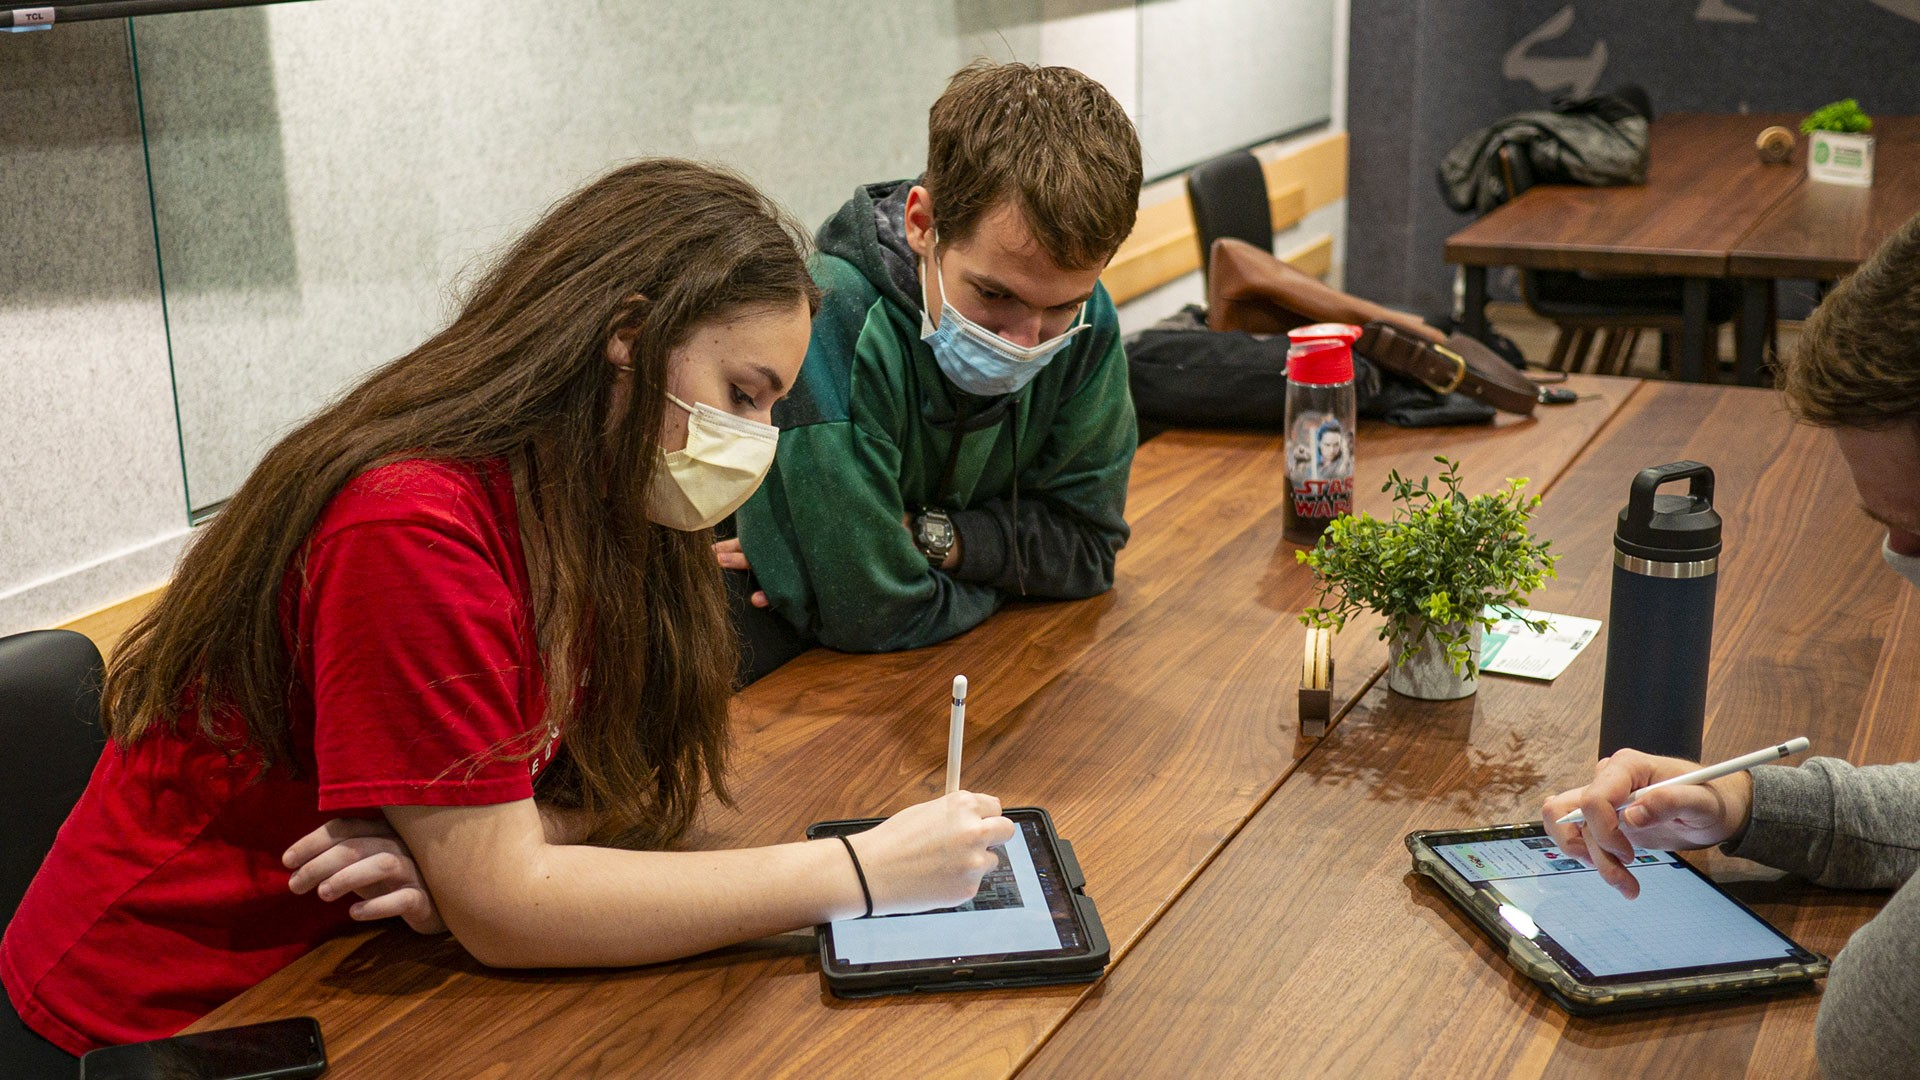 Students sitting at a table using iPads together